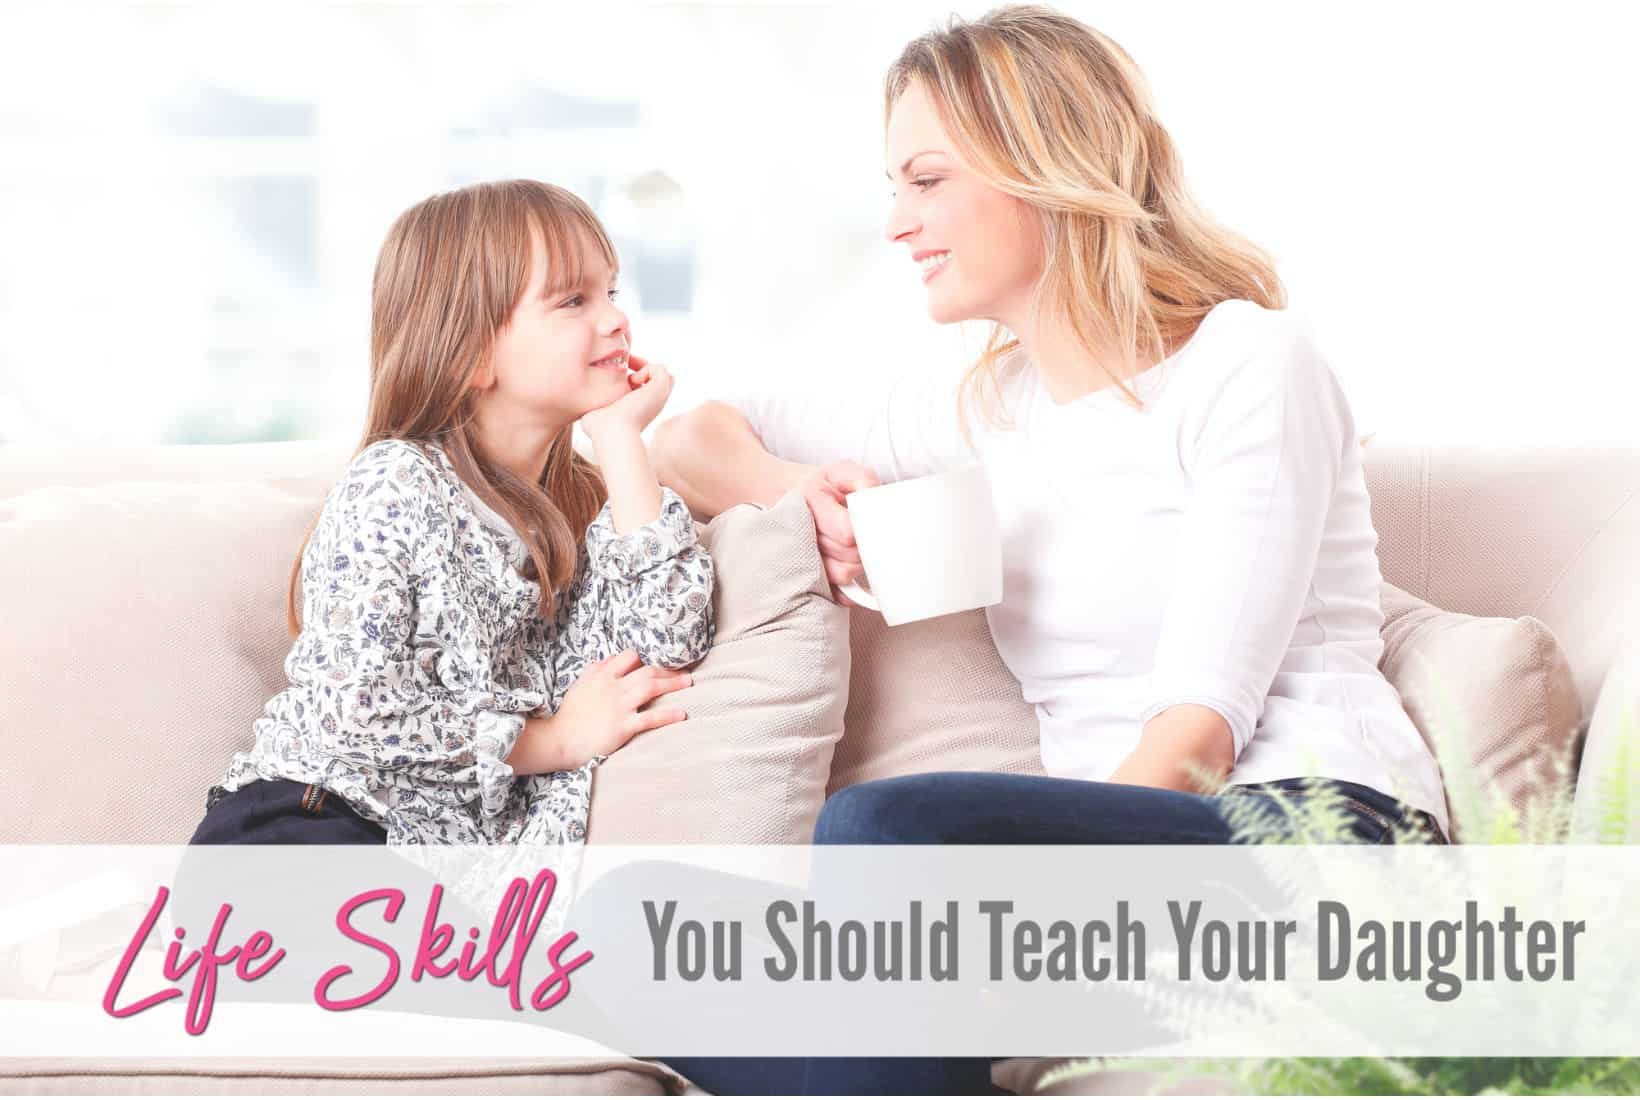 15 Life Skills Your Daughter Should Know